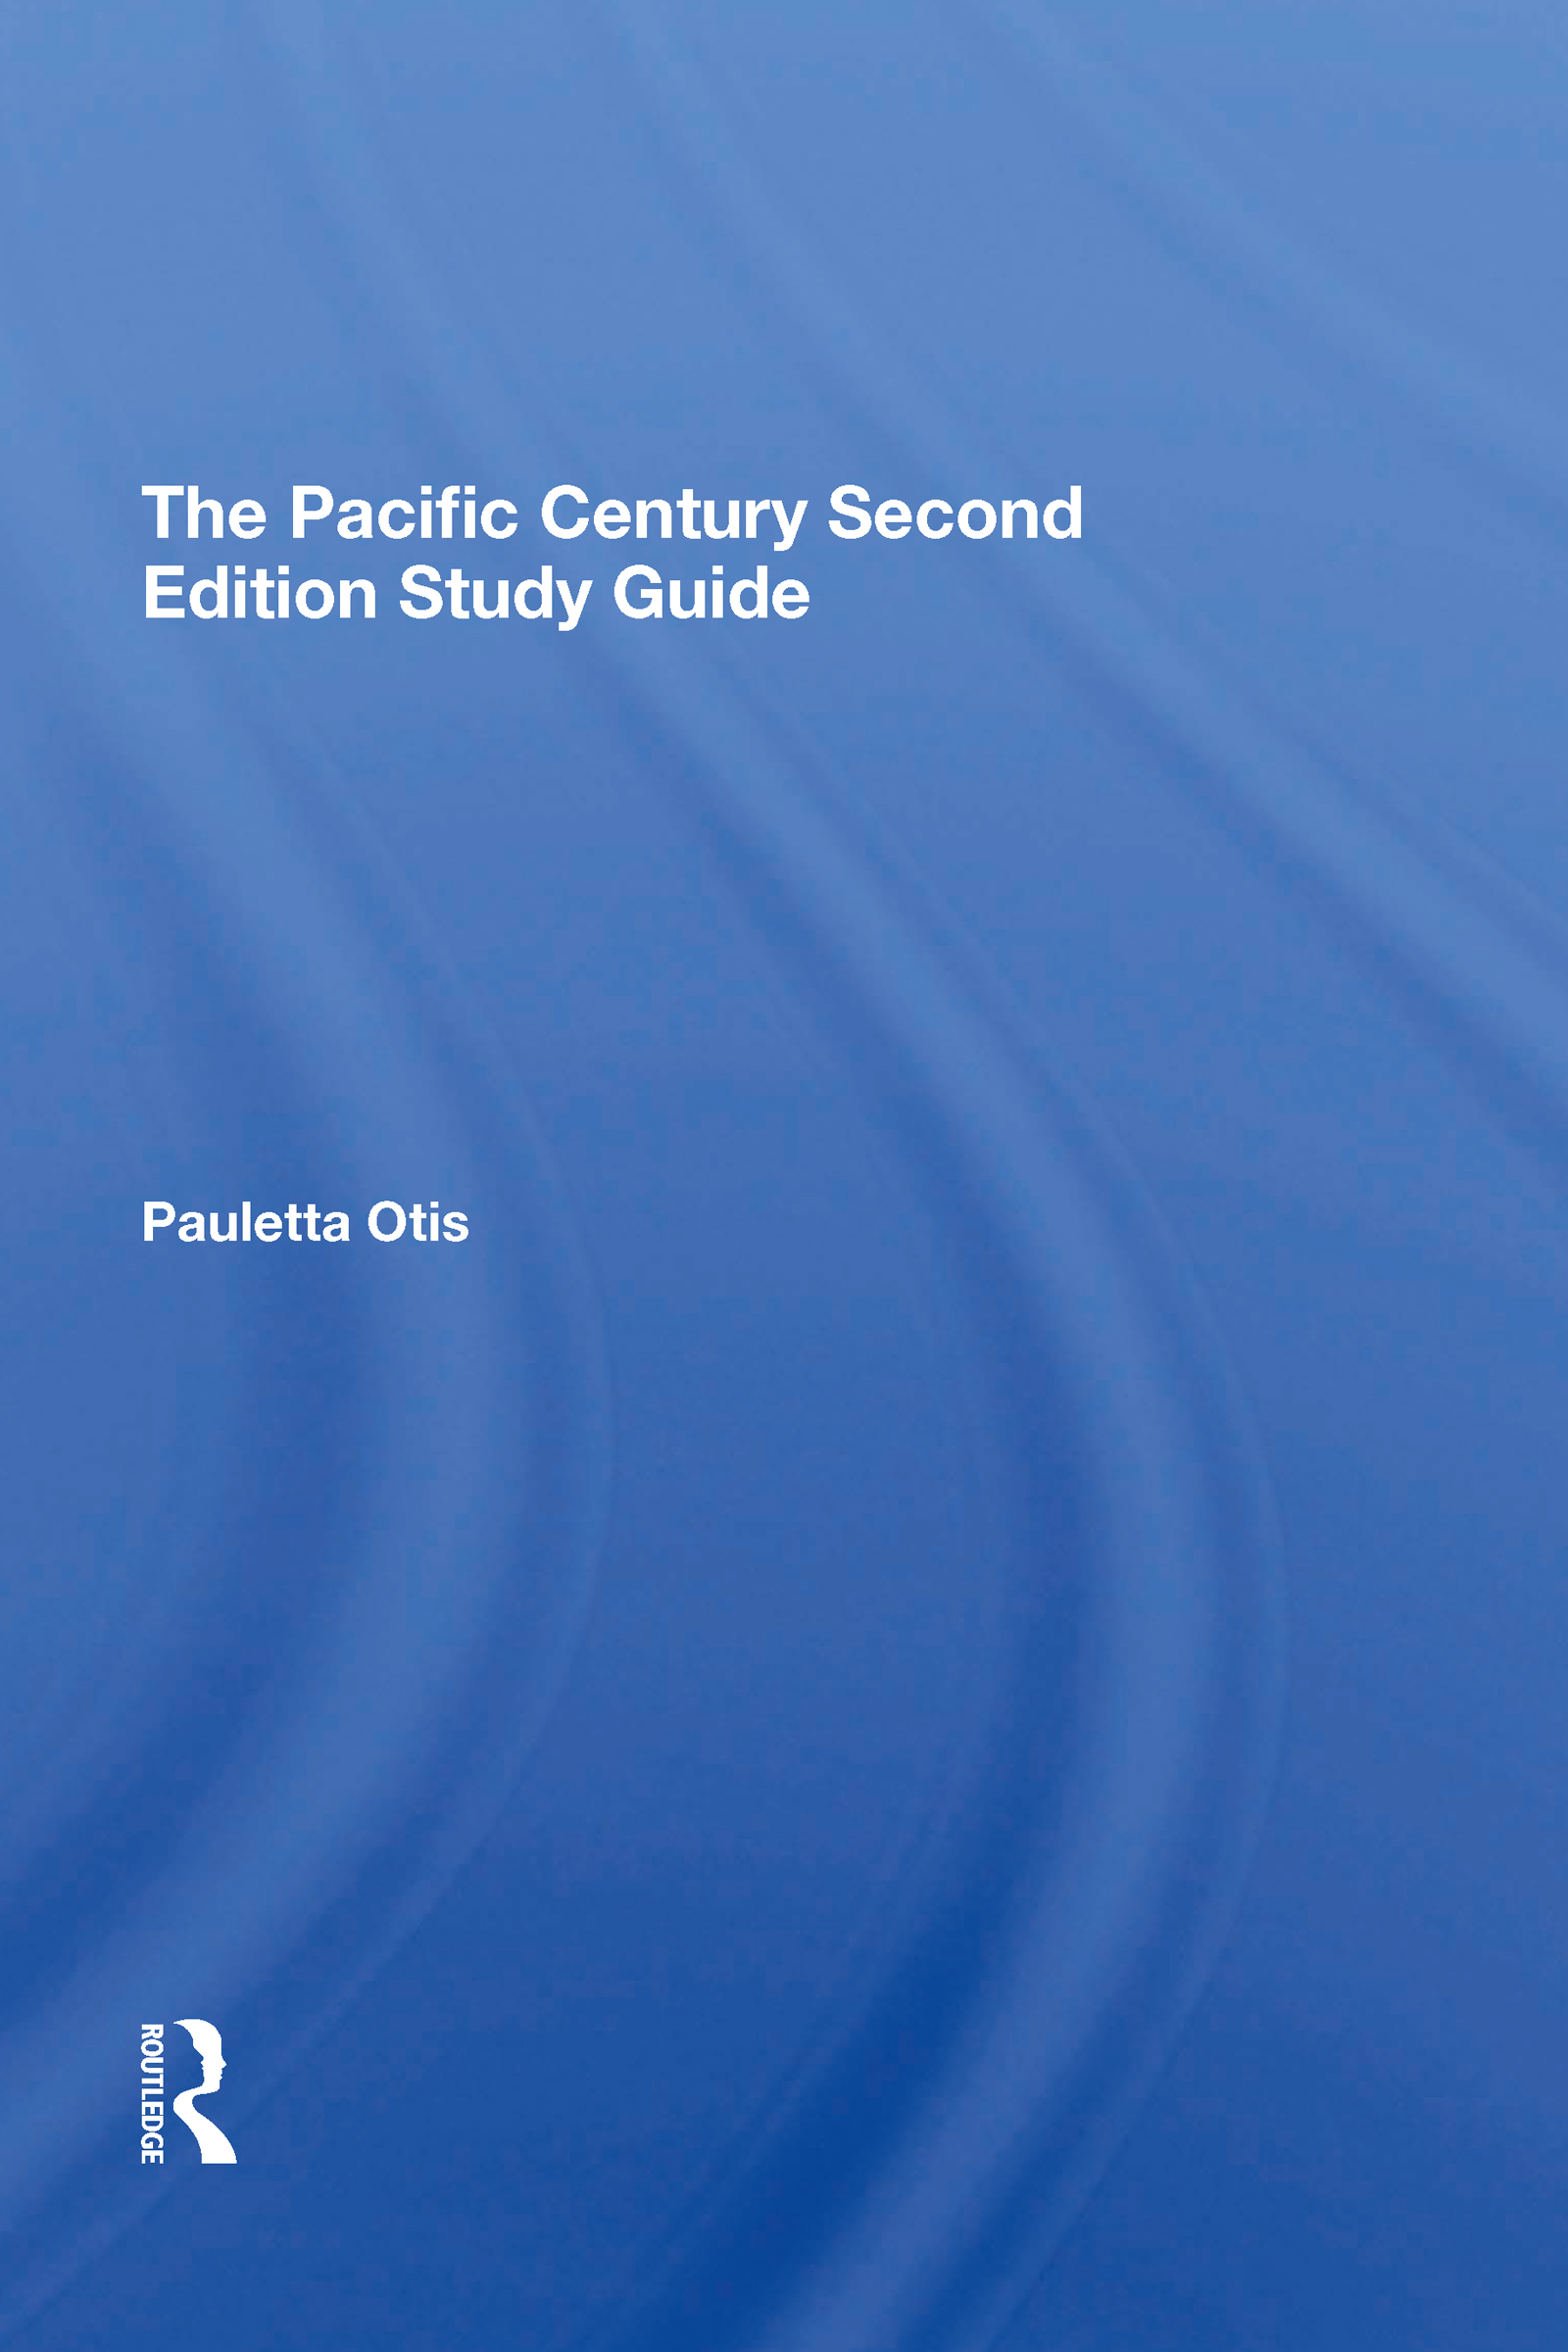 The Pacific Century Second Edition Study Guide